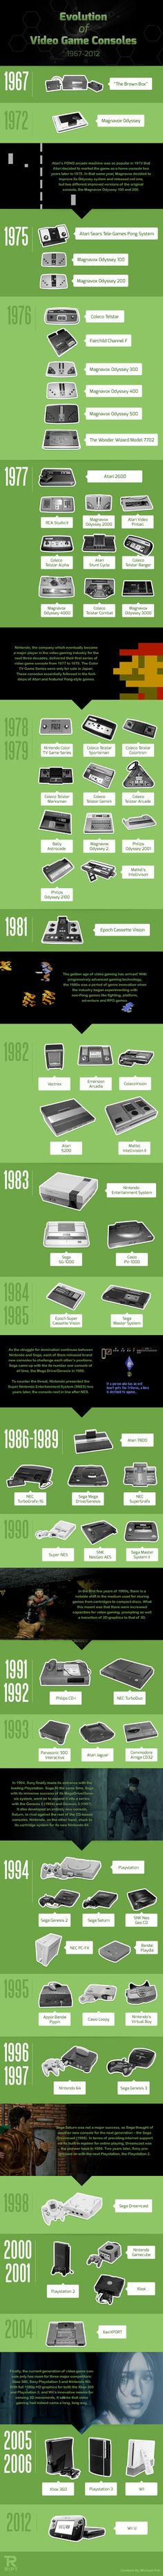 Evolution of Video Game Consoles - Ript Apparel